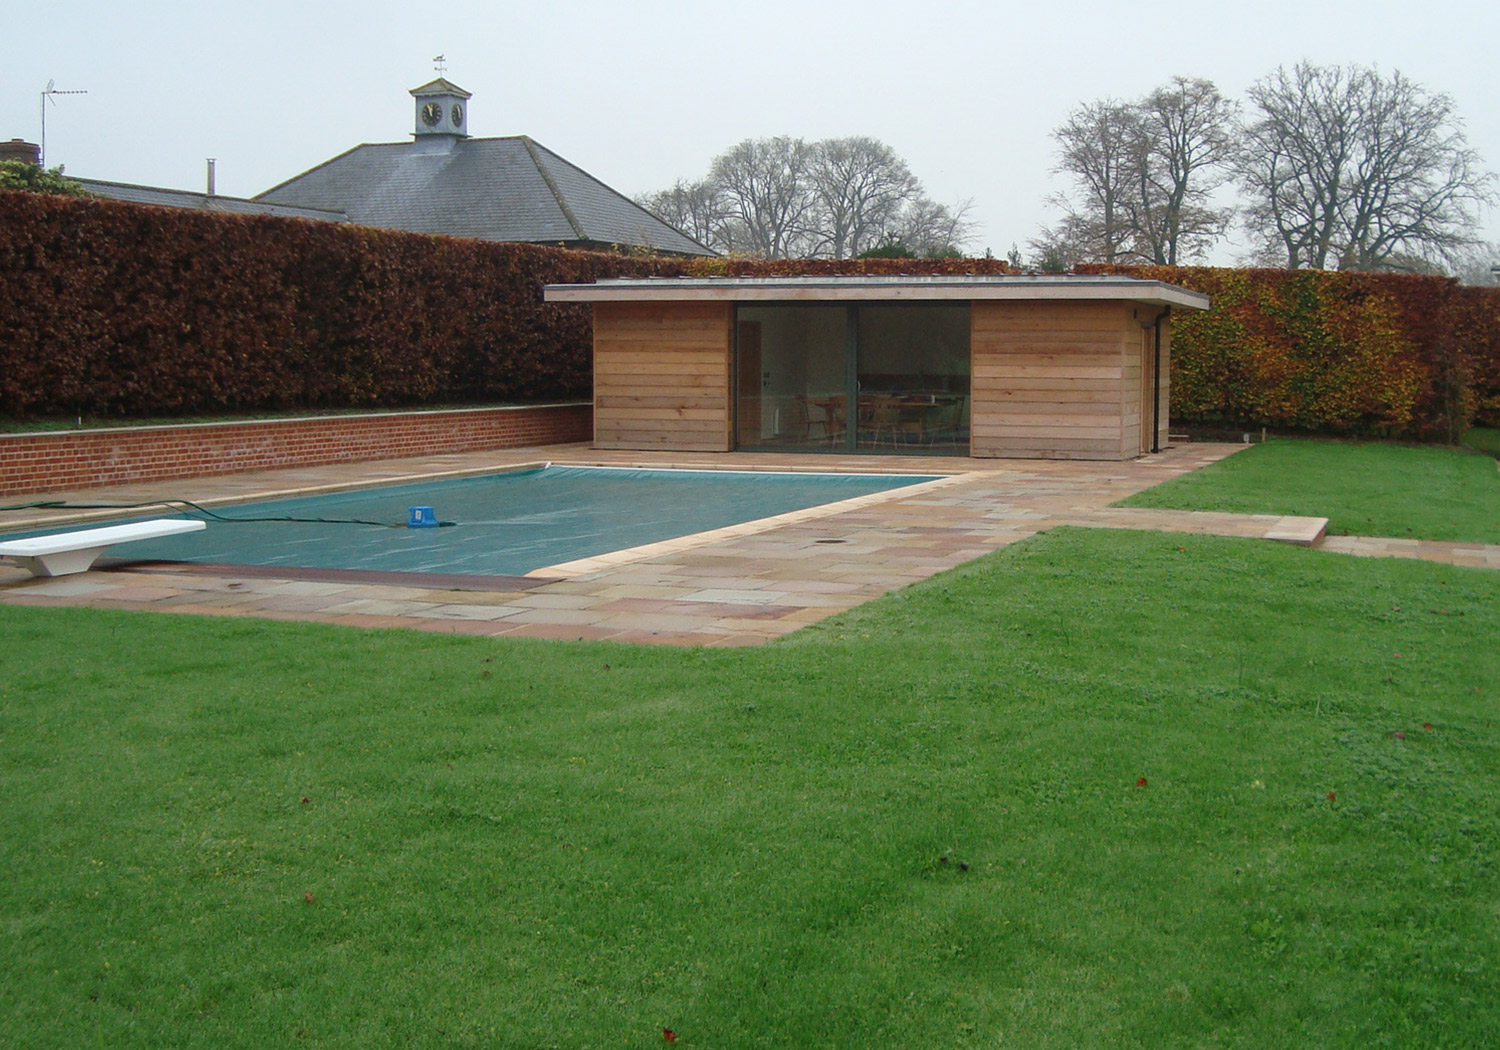 Projects-GardensEstates-LittleThurlow-Pool-1500x1050